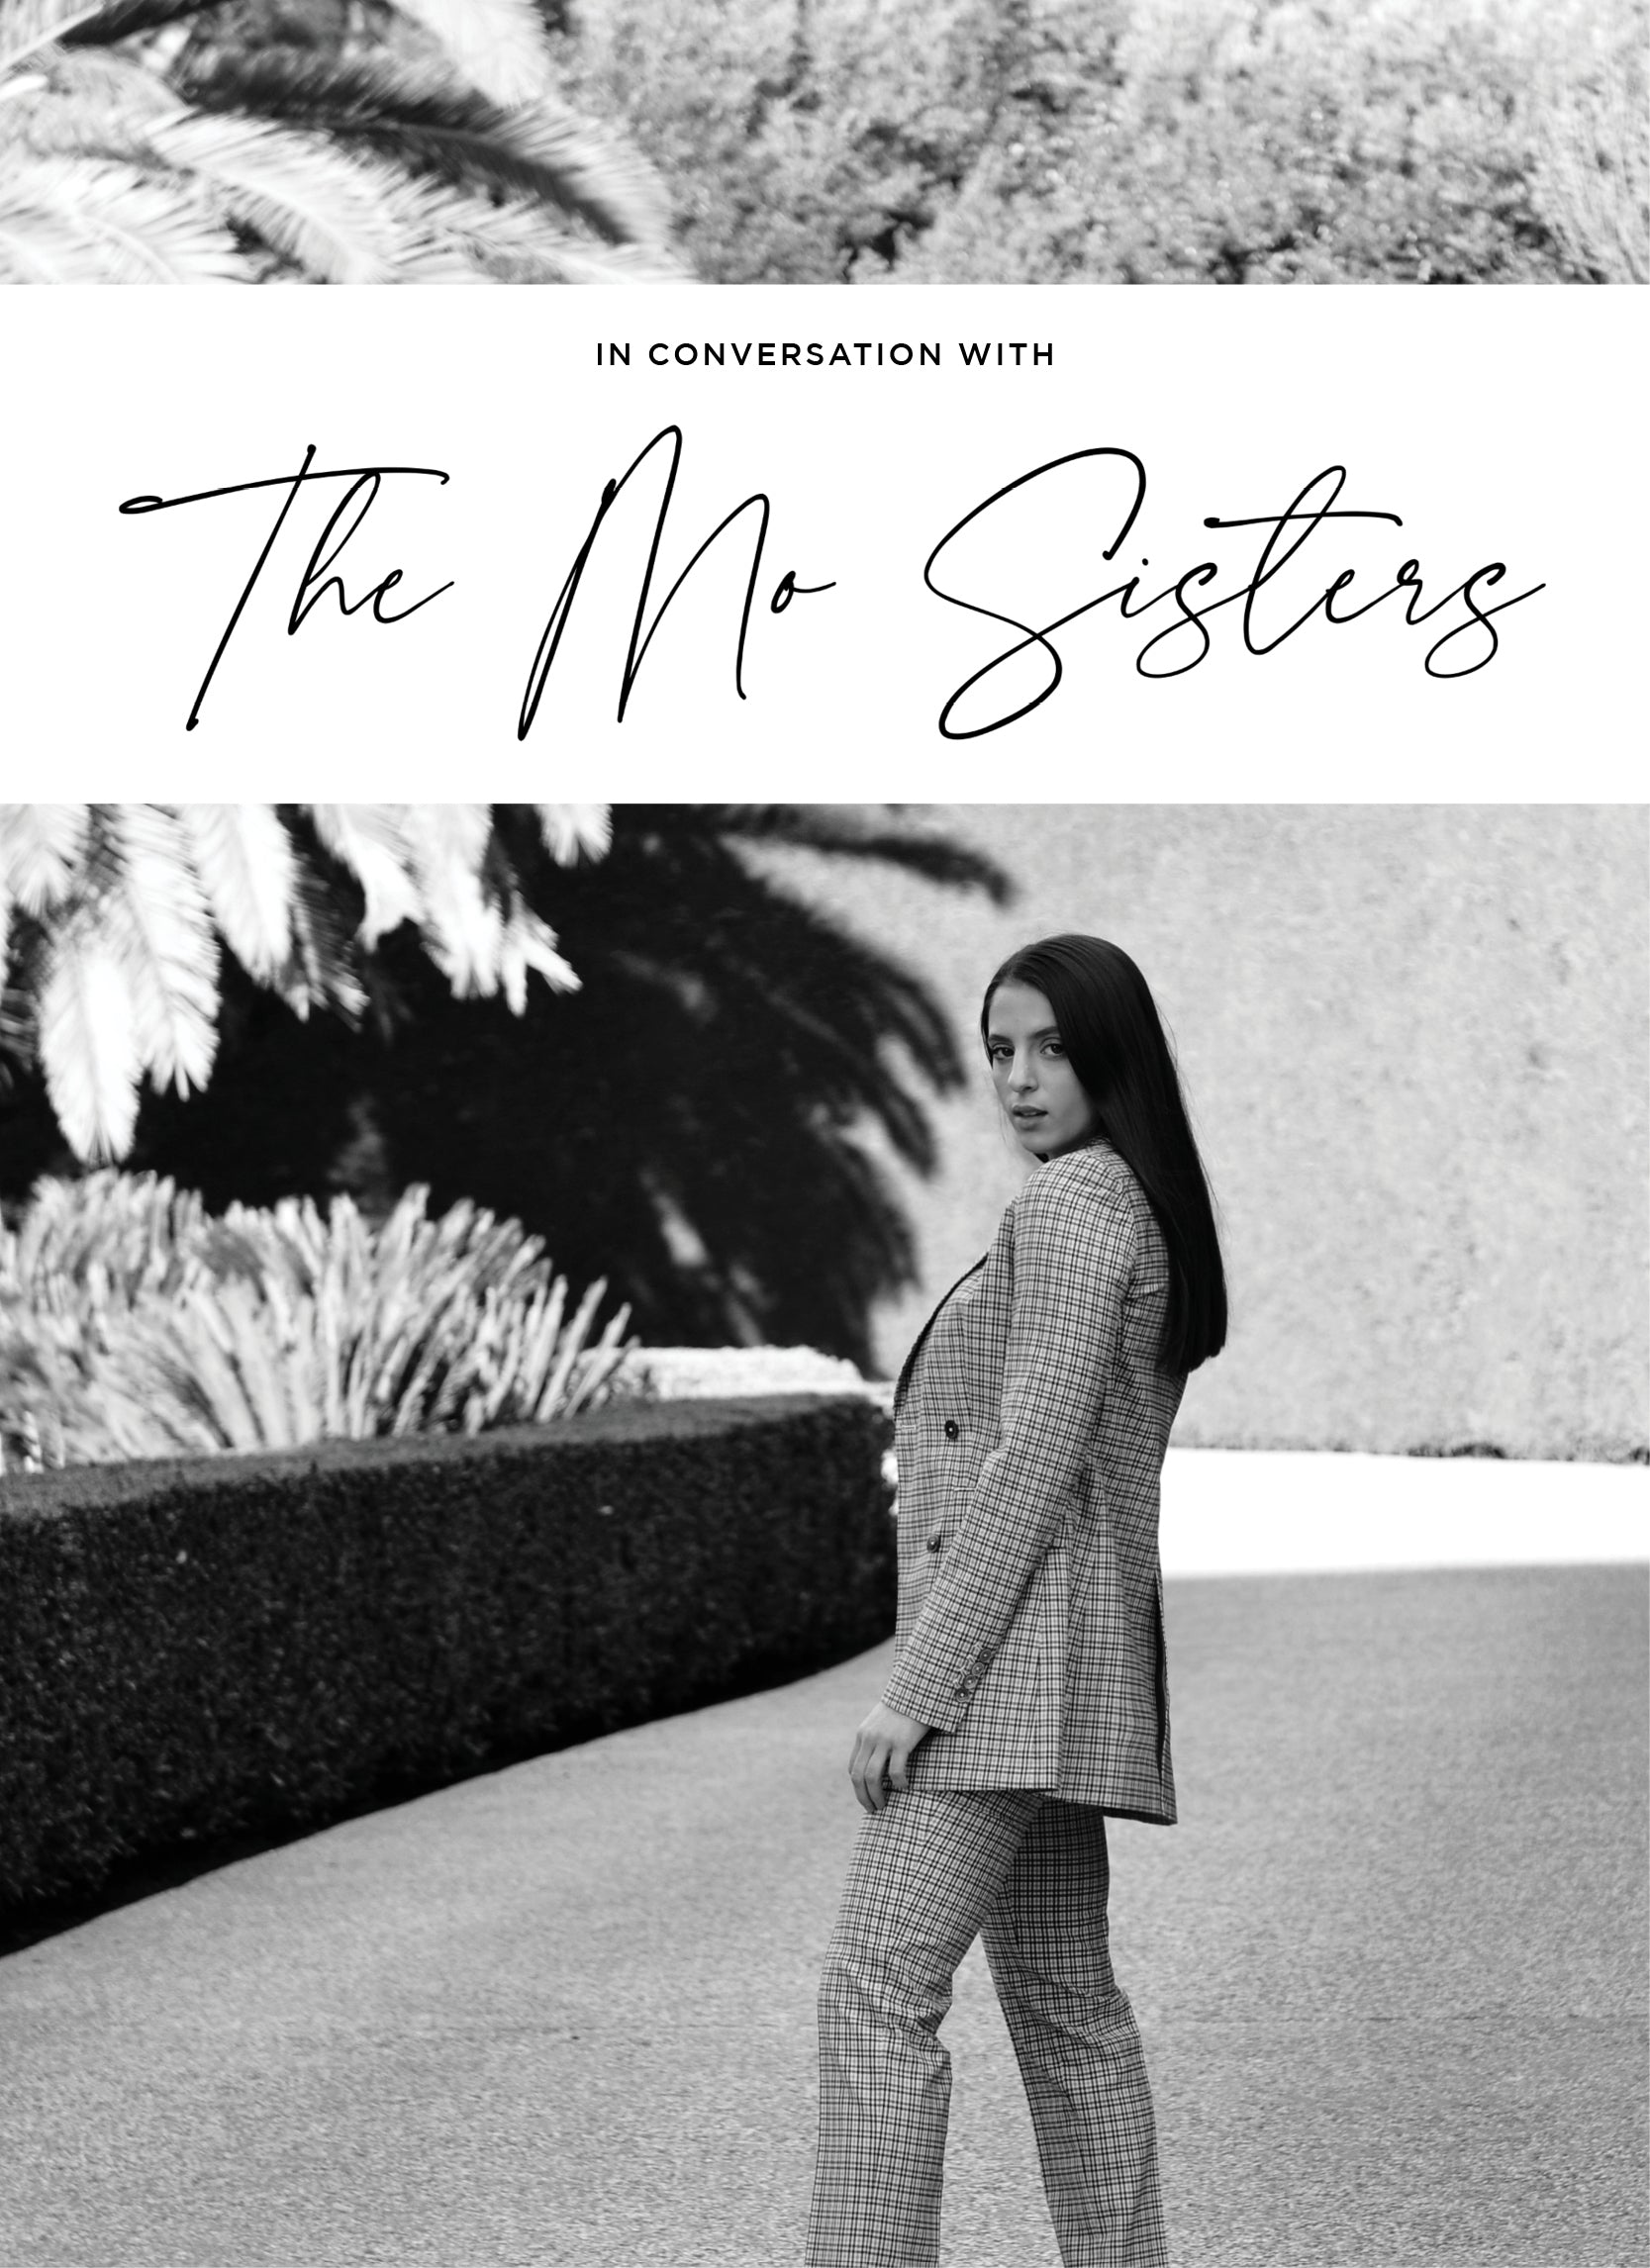 IN CONVERSATION WITH THE MO SISTERS